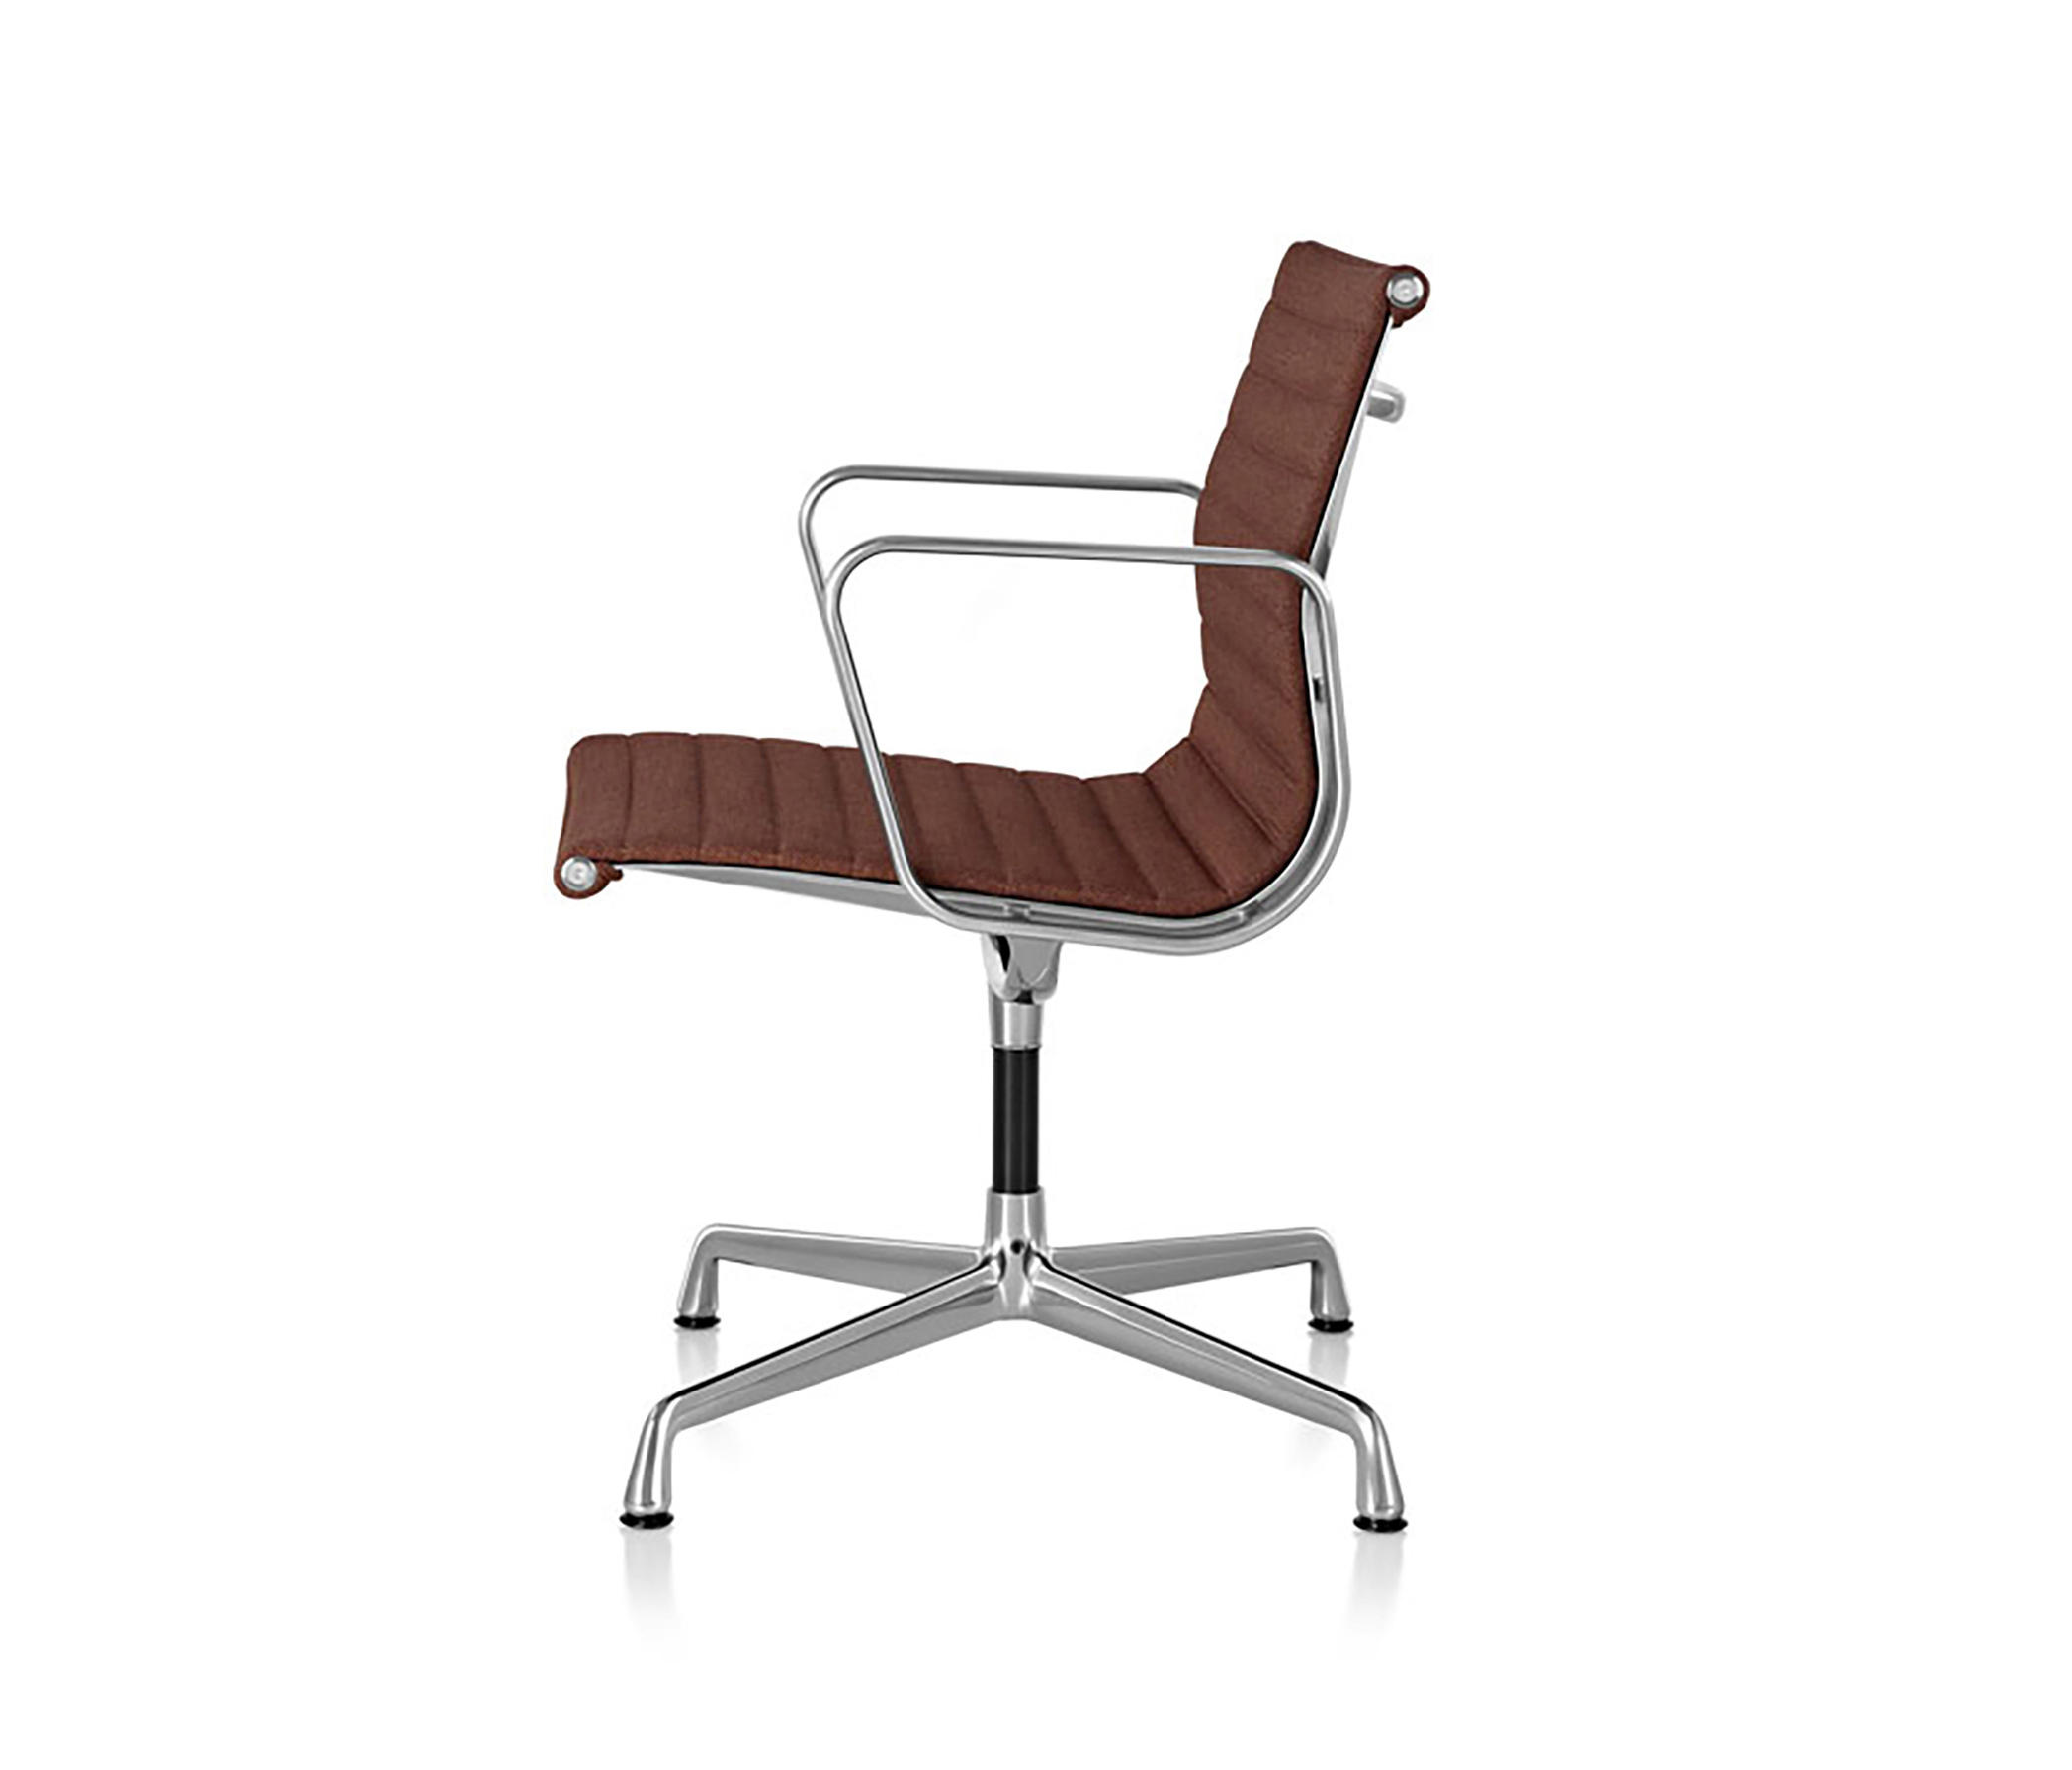 eames aluminum group management chair conference chairs. Black Bedroom Furniture Sets. Home Design Ideas